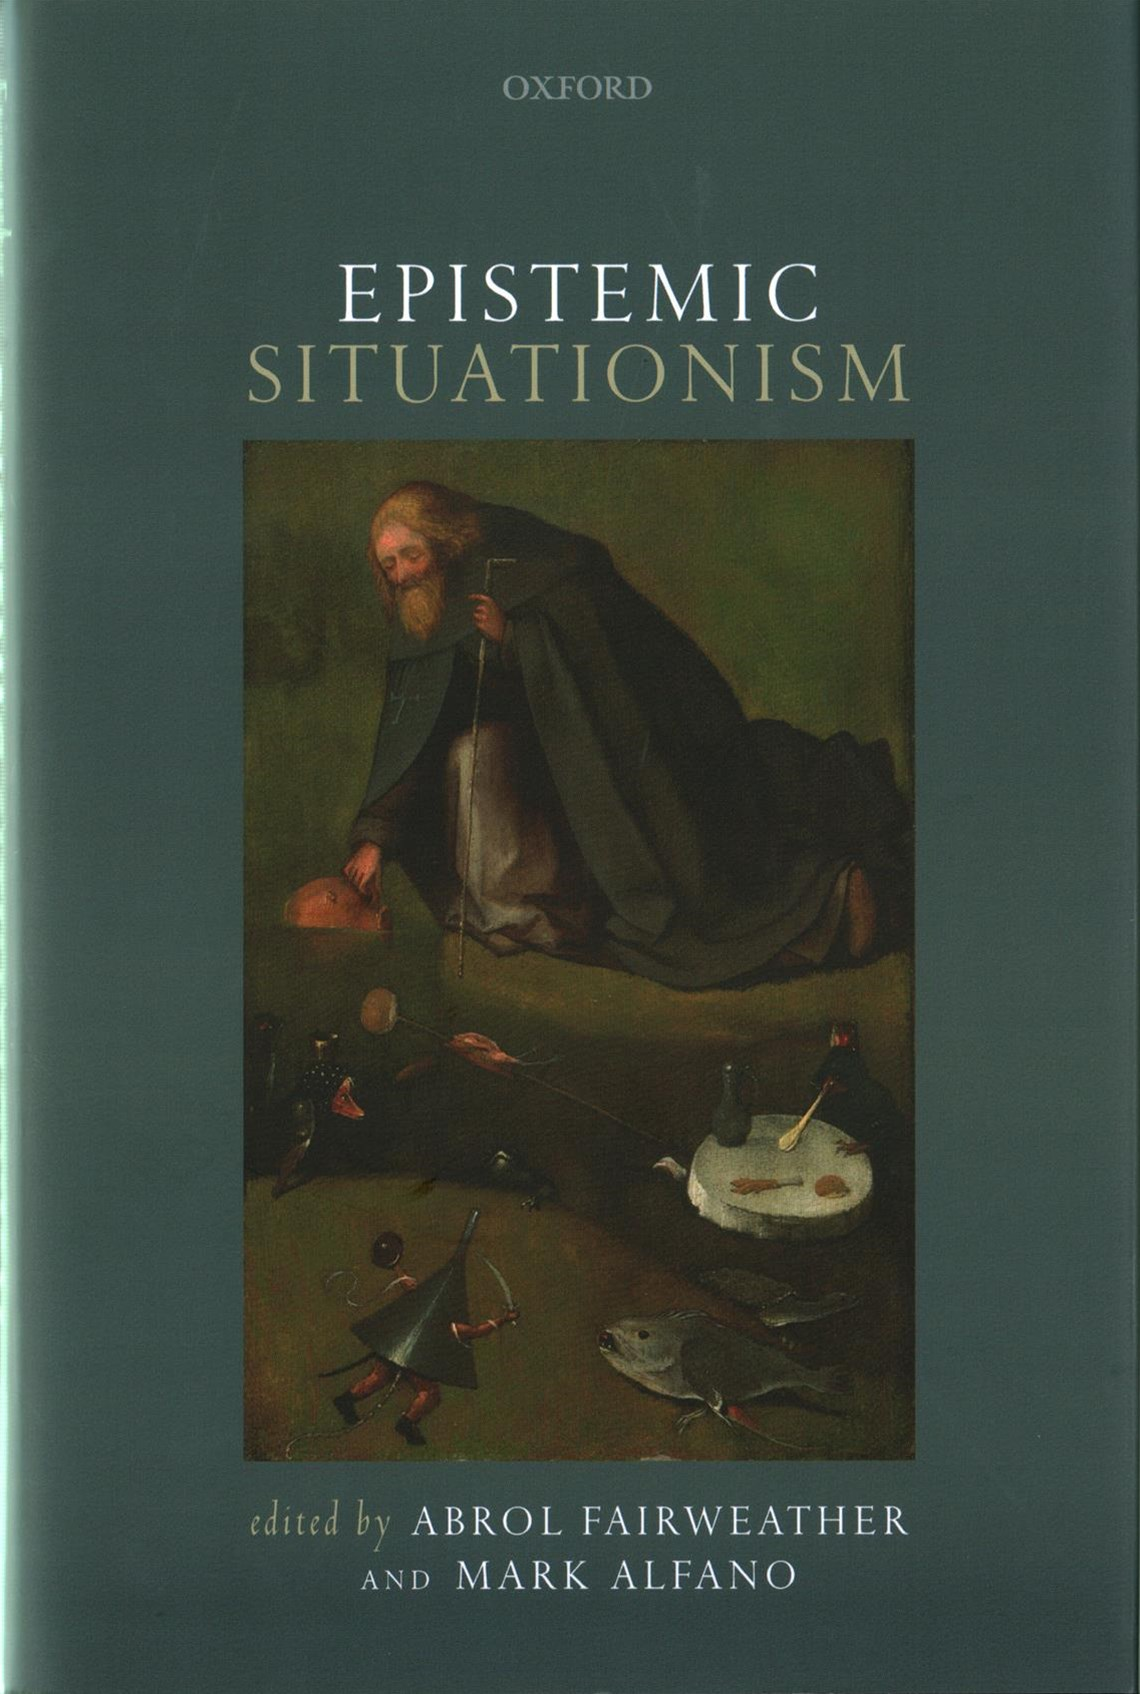 Epistemic Situationism